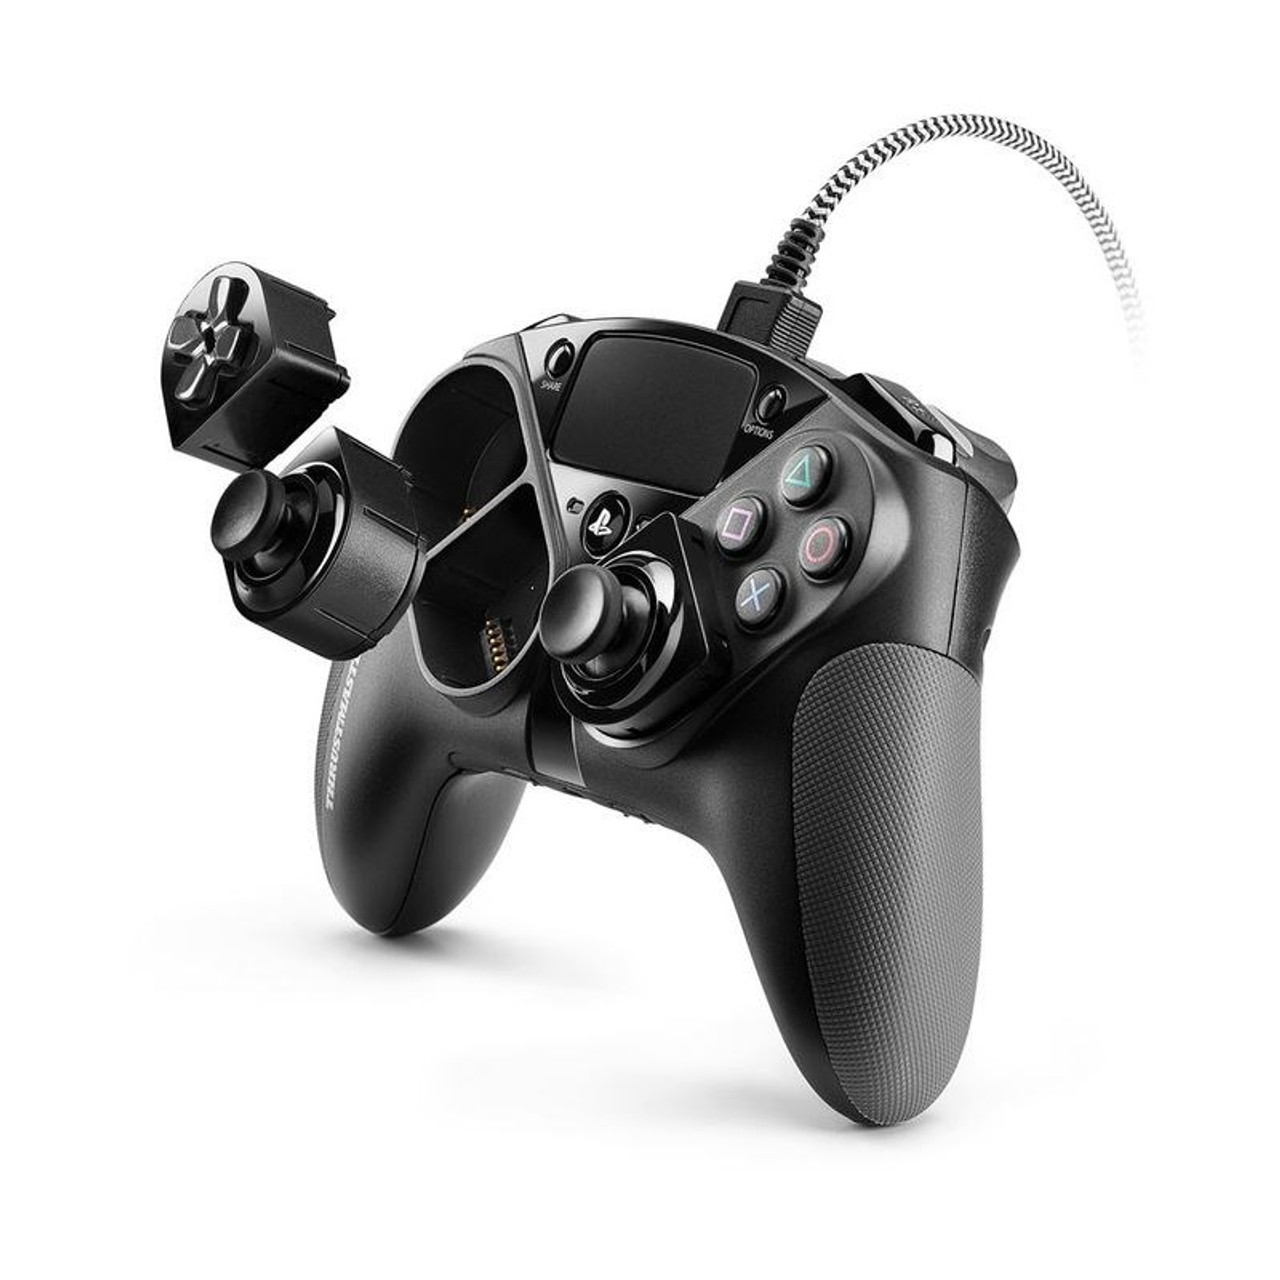 Image for Thrustmaster eSwap Pro Modular Wired Controller - Black CX Computer Superstore